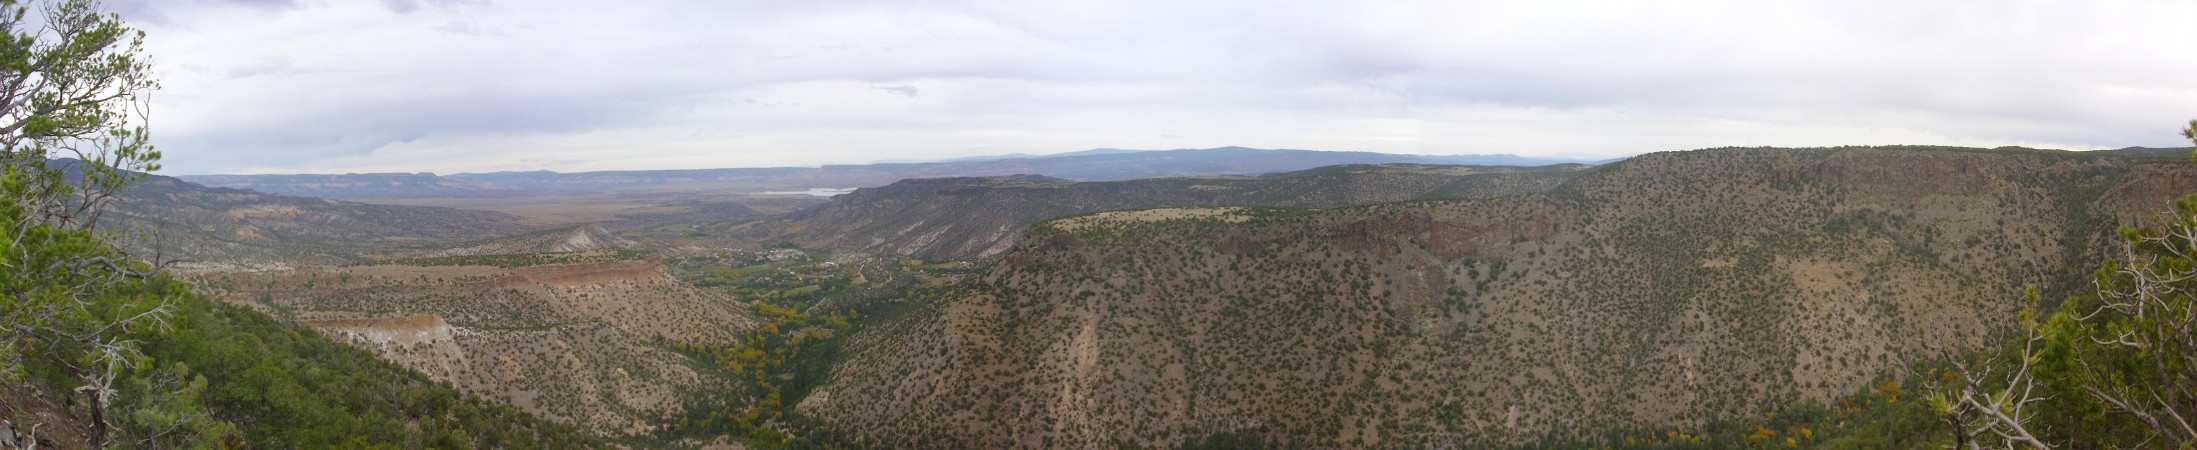 Canones area seen from Polvadera Mesa